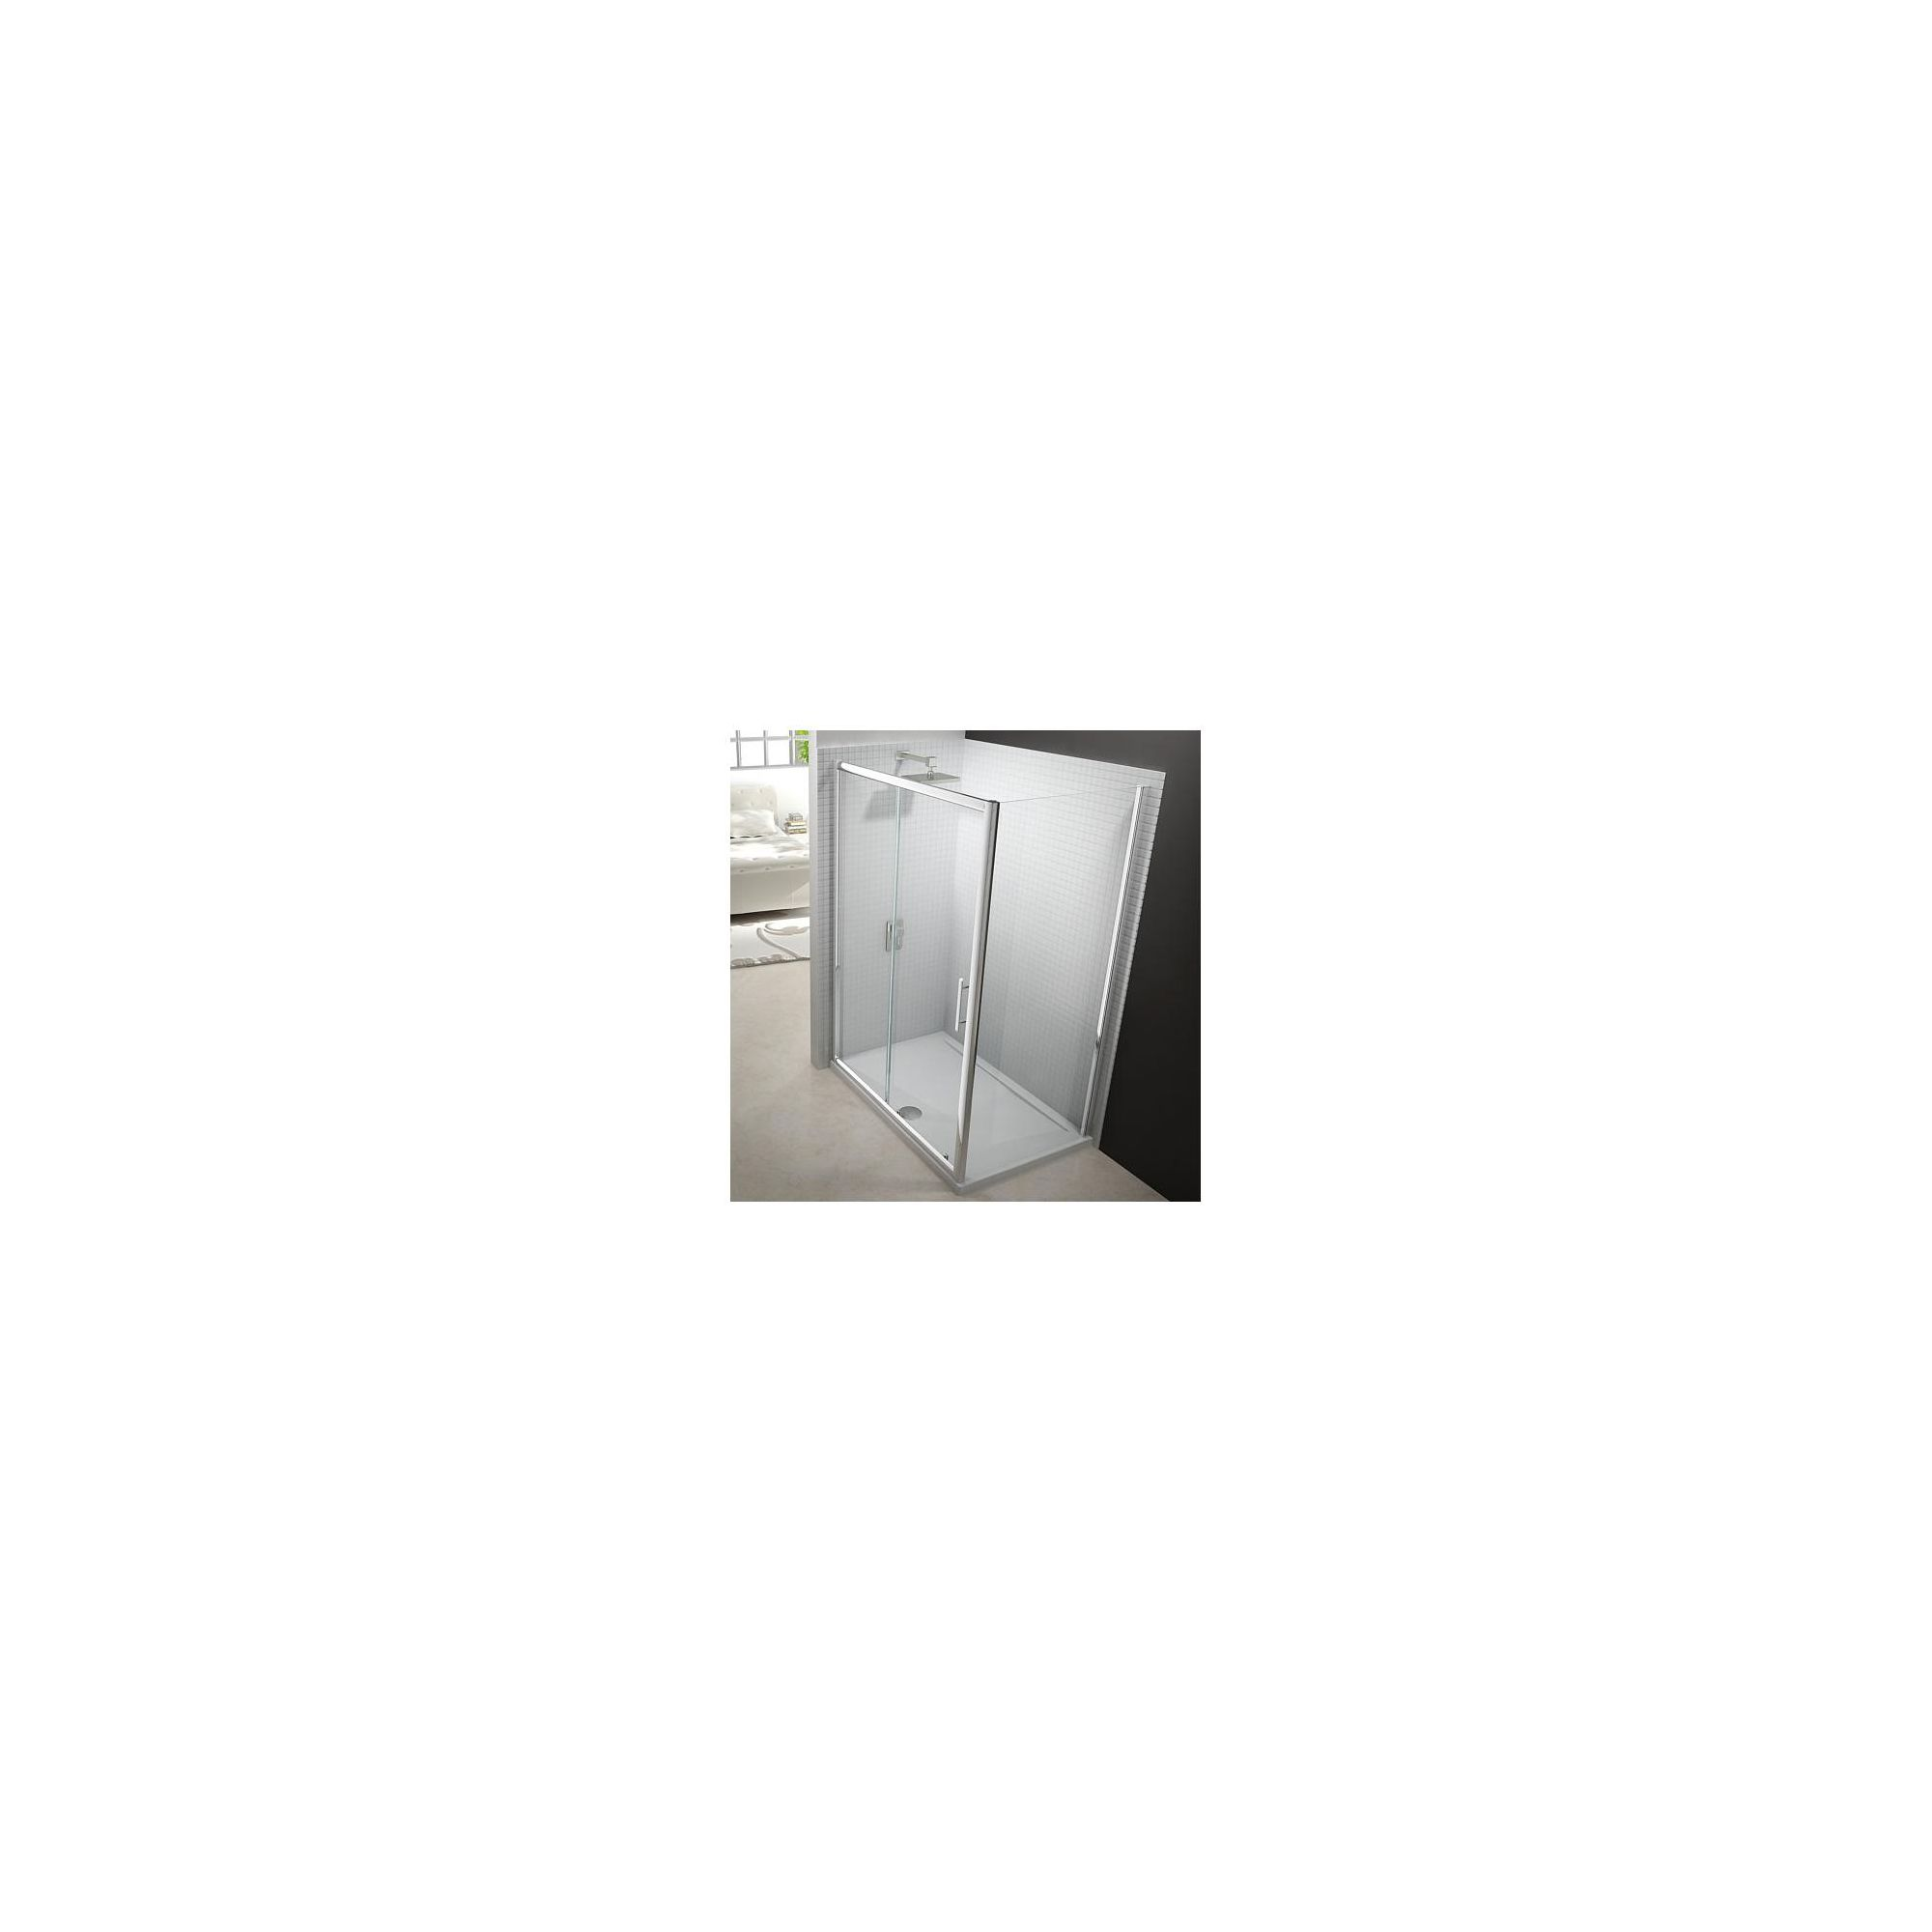 Merlyn Series 6 Sliding Shower Door, 1100mm Wide, Chrome Frame, 6mm Glass at Tesco Direct